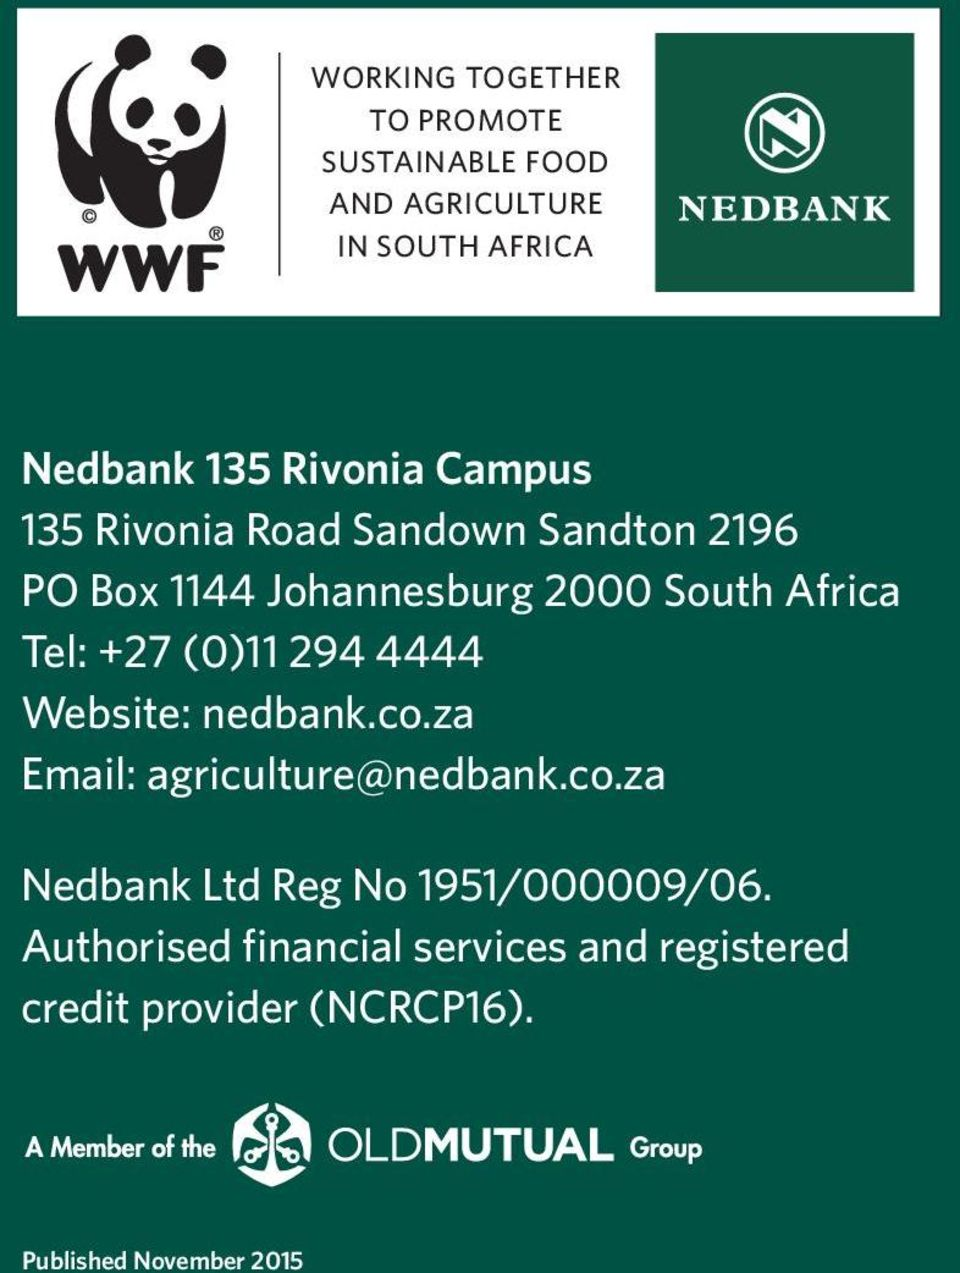 (0)11 294 4444 Website: nedbank.co.za Email: agriculture@nedbank.co.za Nedbank Ltd Reg No 1951/000009/06.